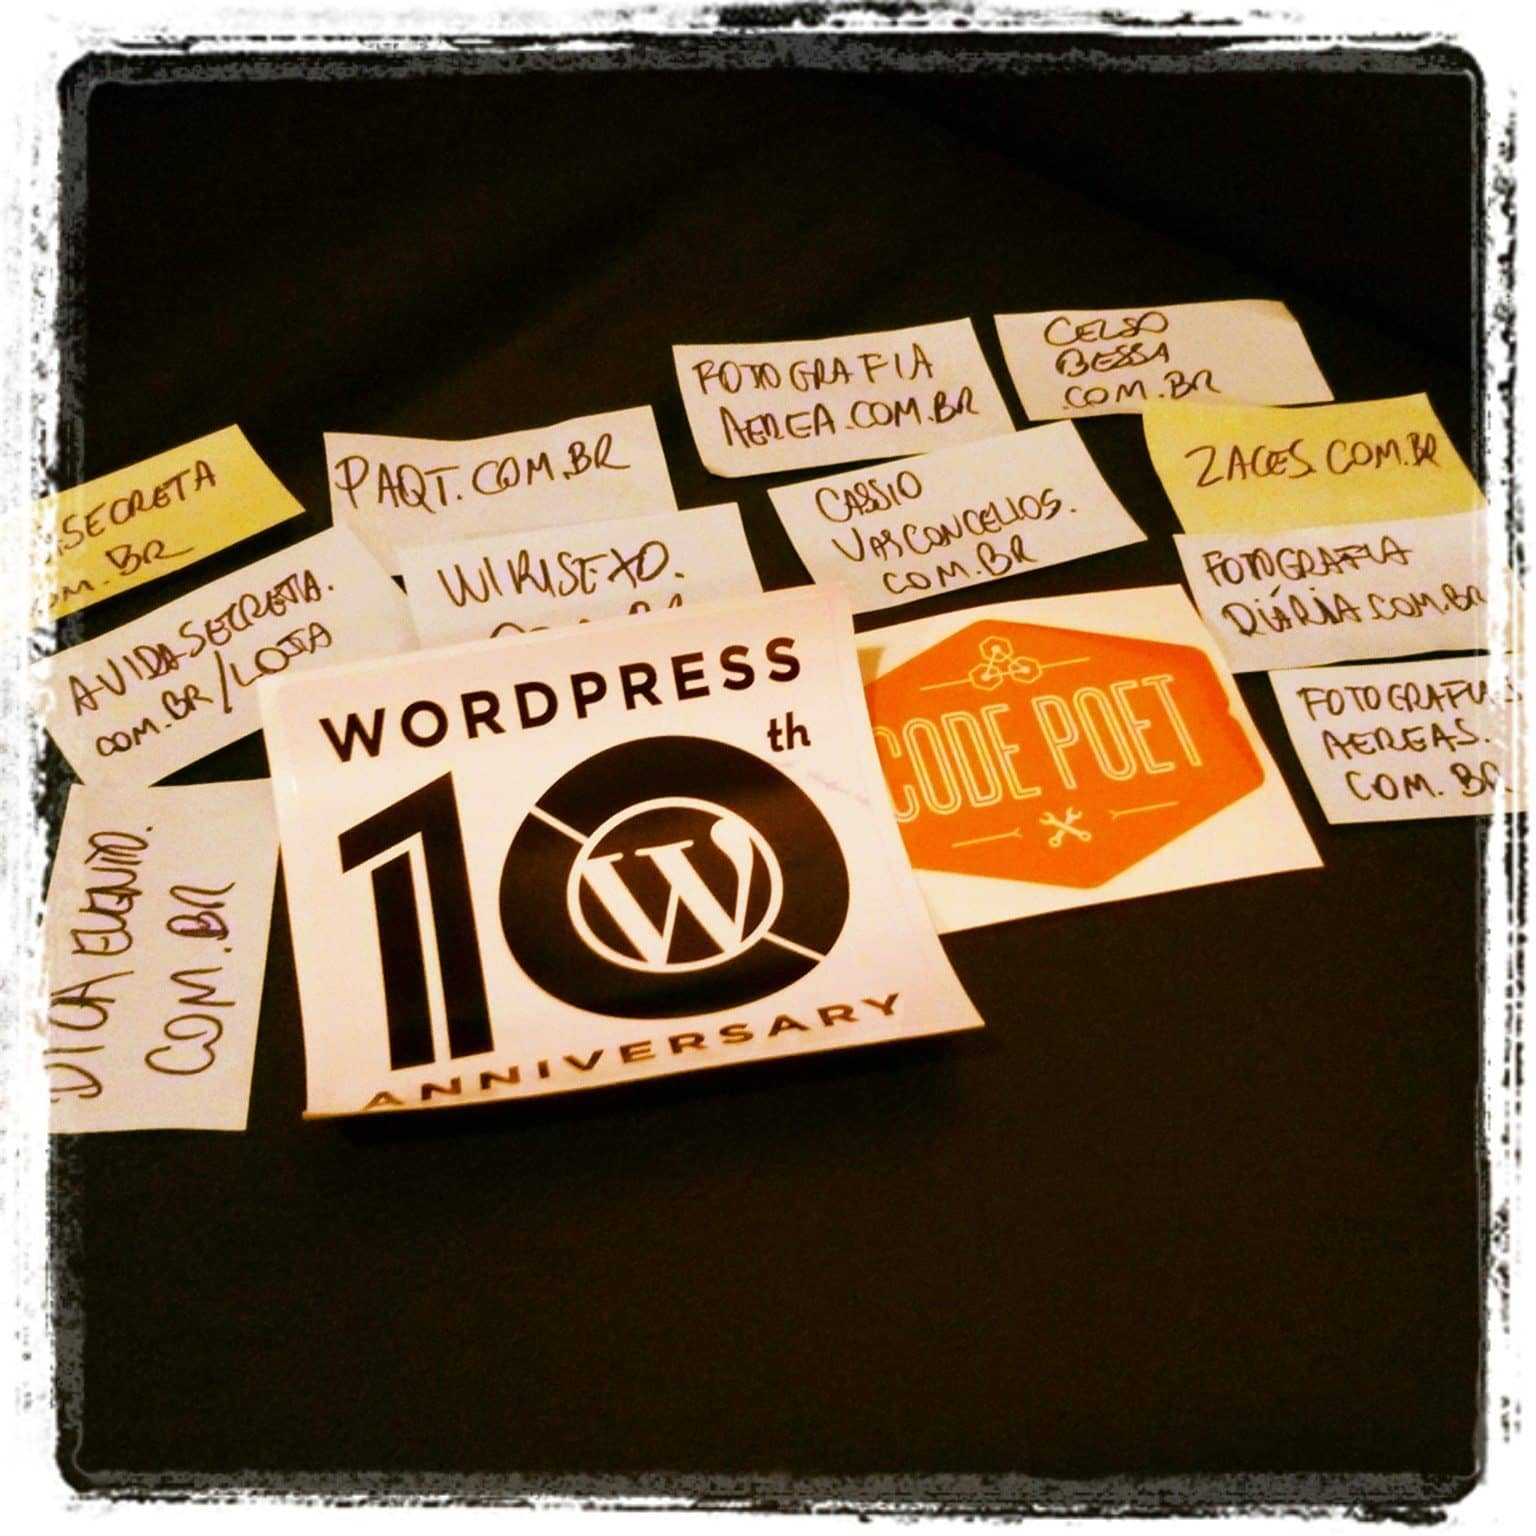 Wordpress 10 anos: 10 projetos, sites e blogs que participo